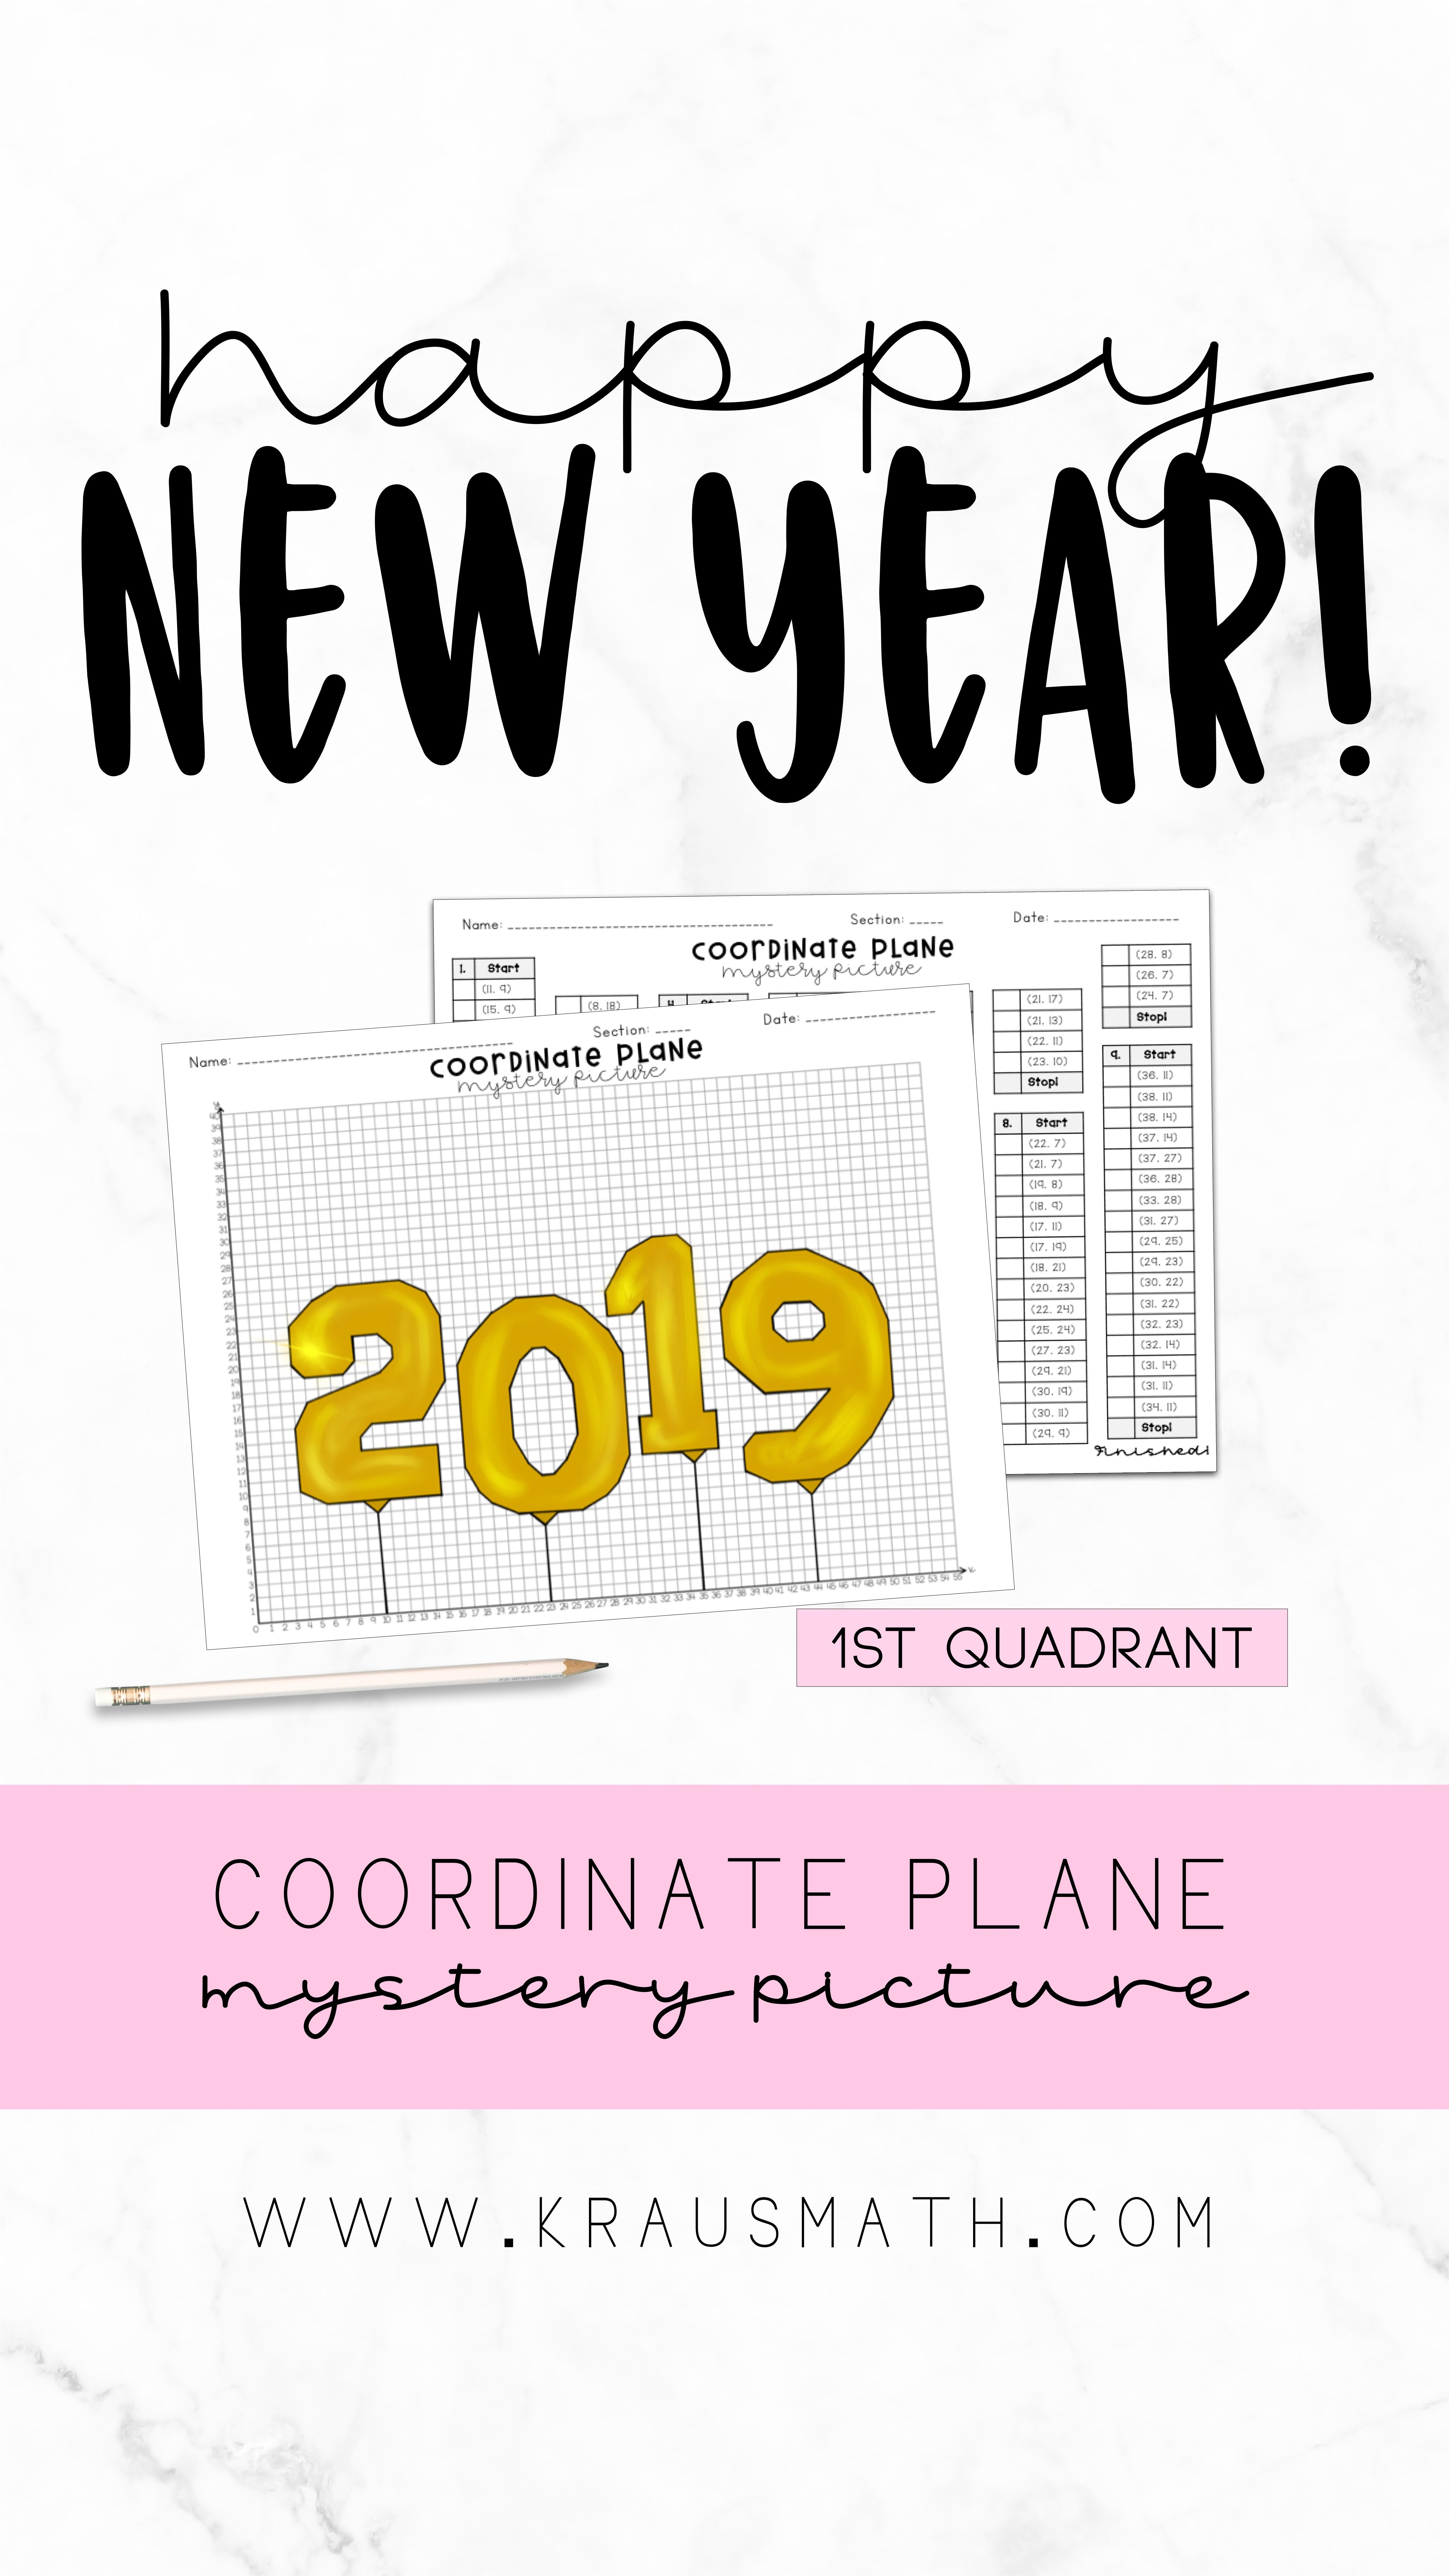 New Years Balloons Coordinate Plane Activity 1st